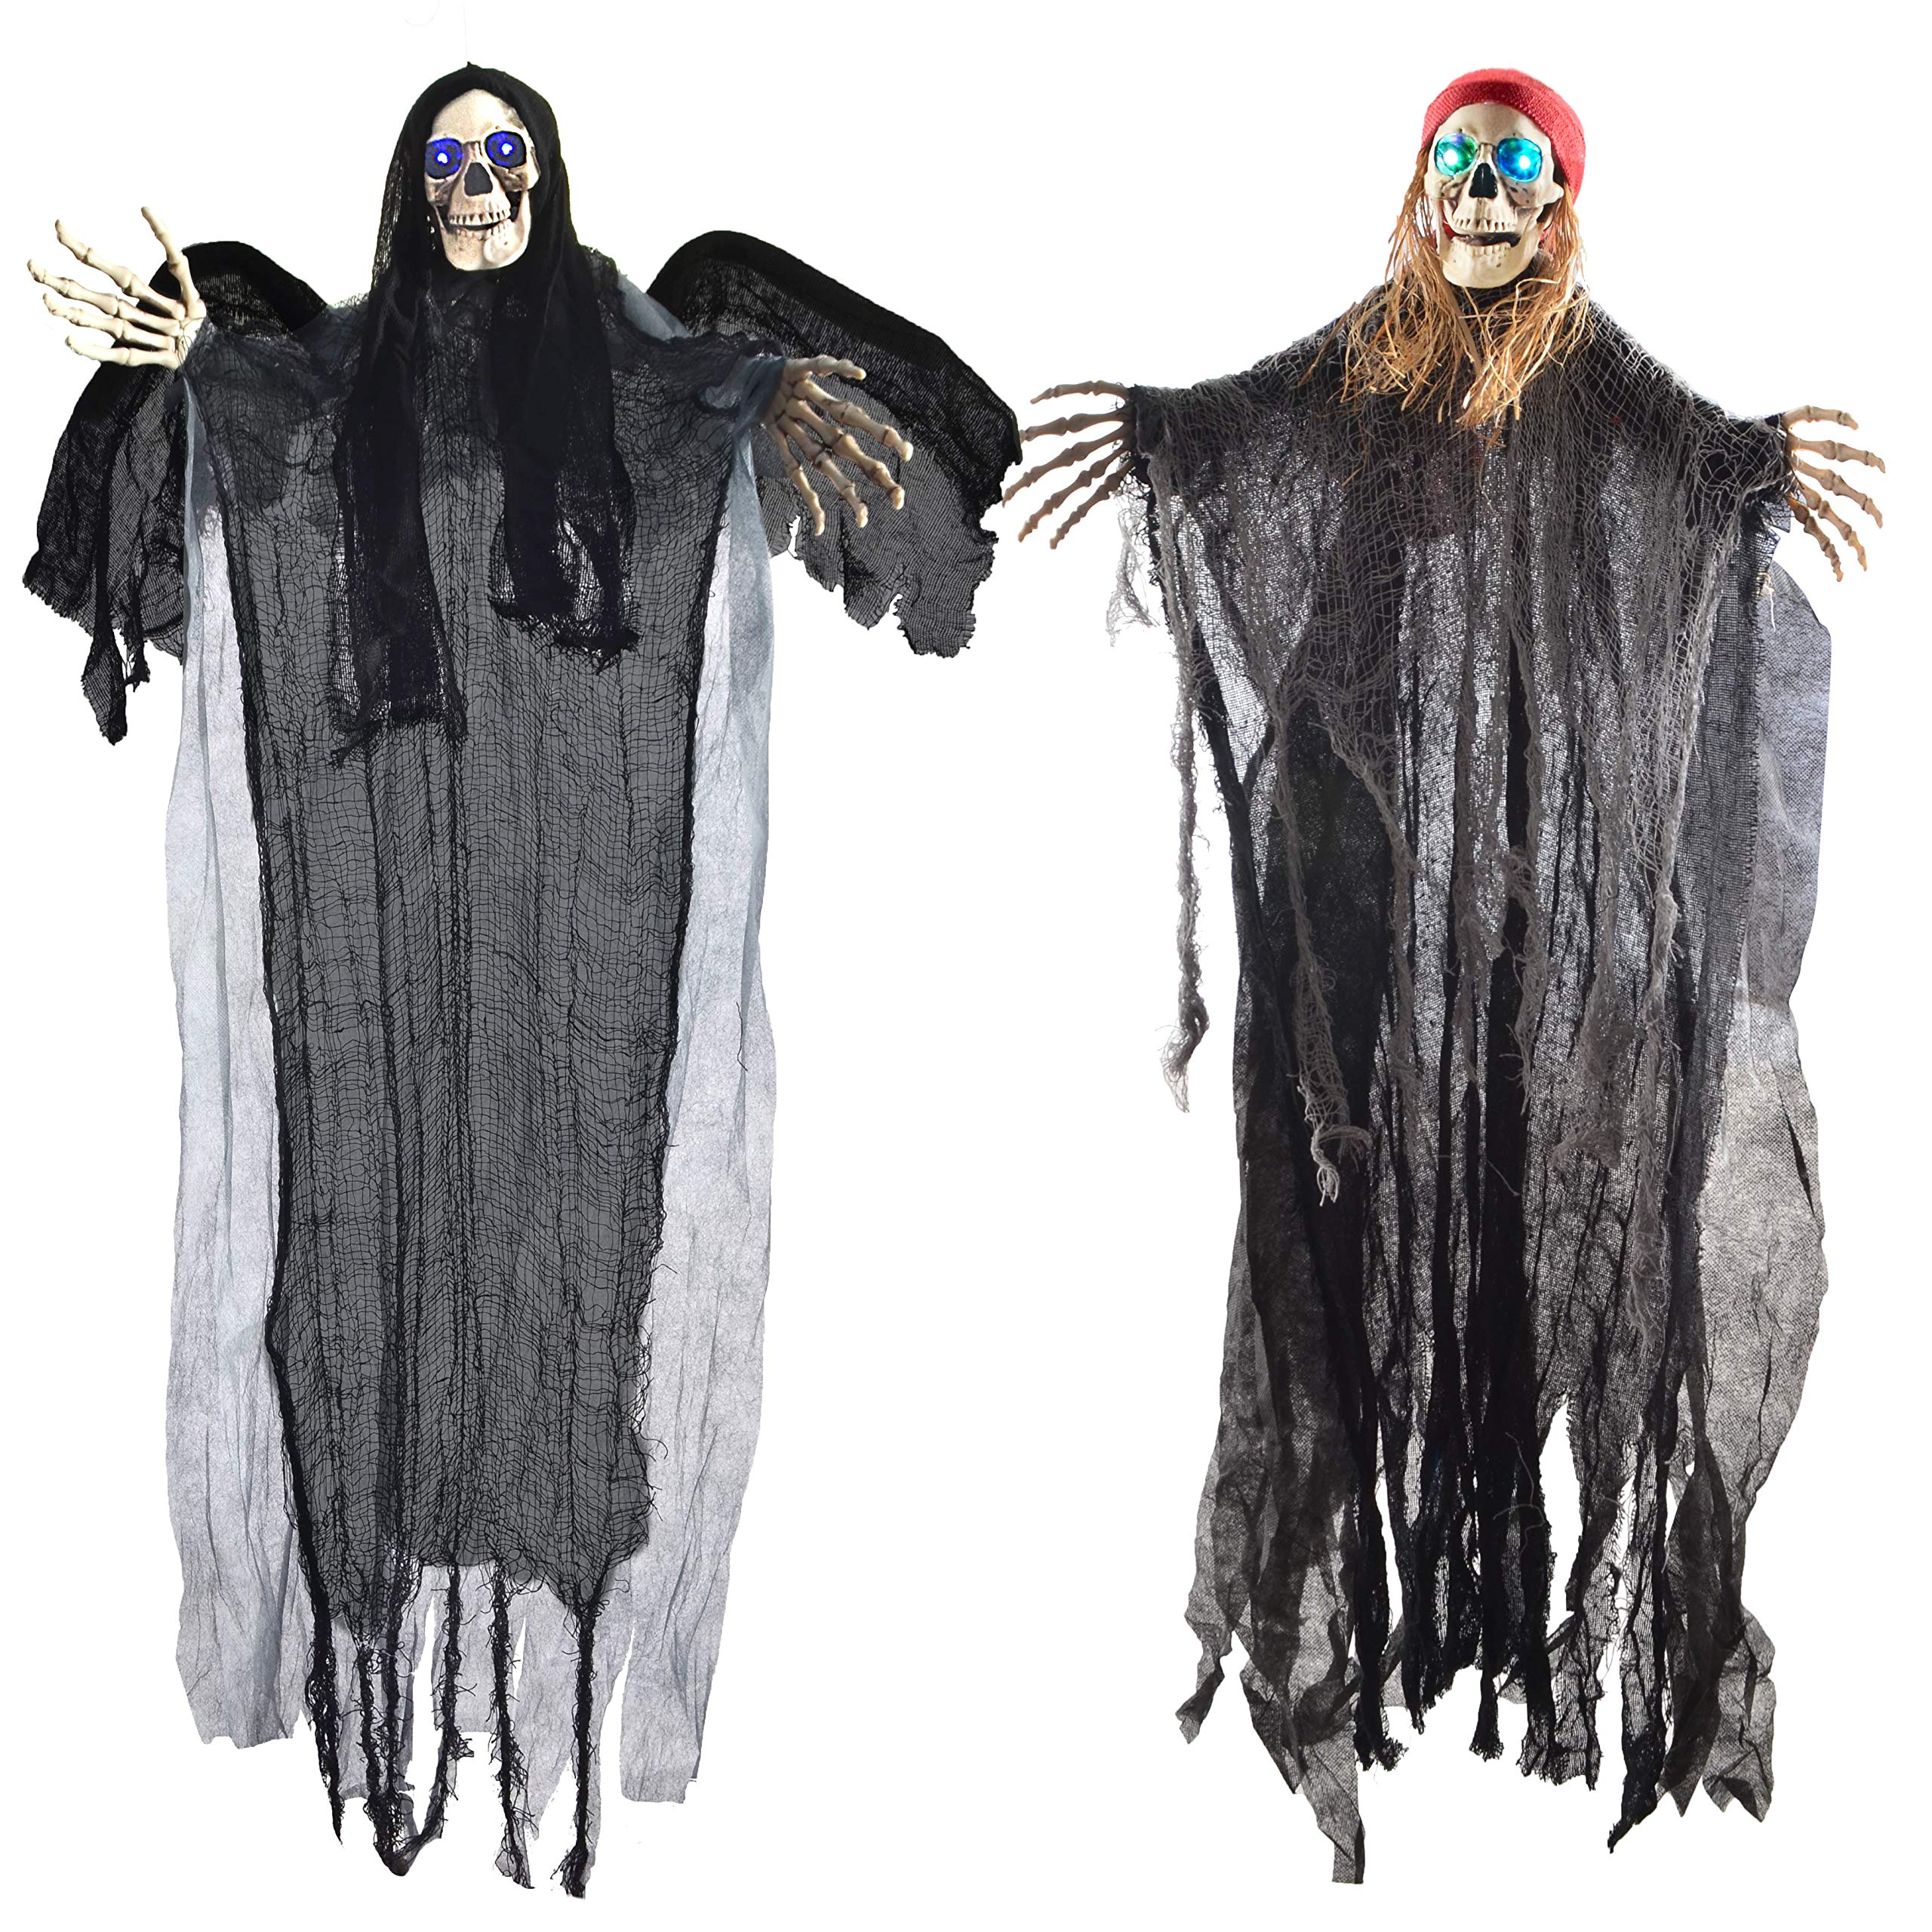 Two 40'' Halloween Hanging Ghost Decorations, One Flying Grim Reaper and One Skeleton Pirate with LED Flashing Eyes by JOYIN